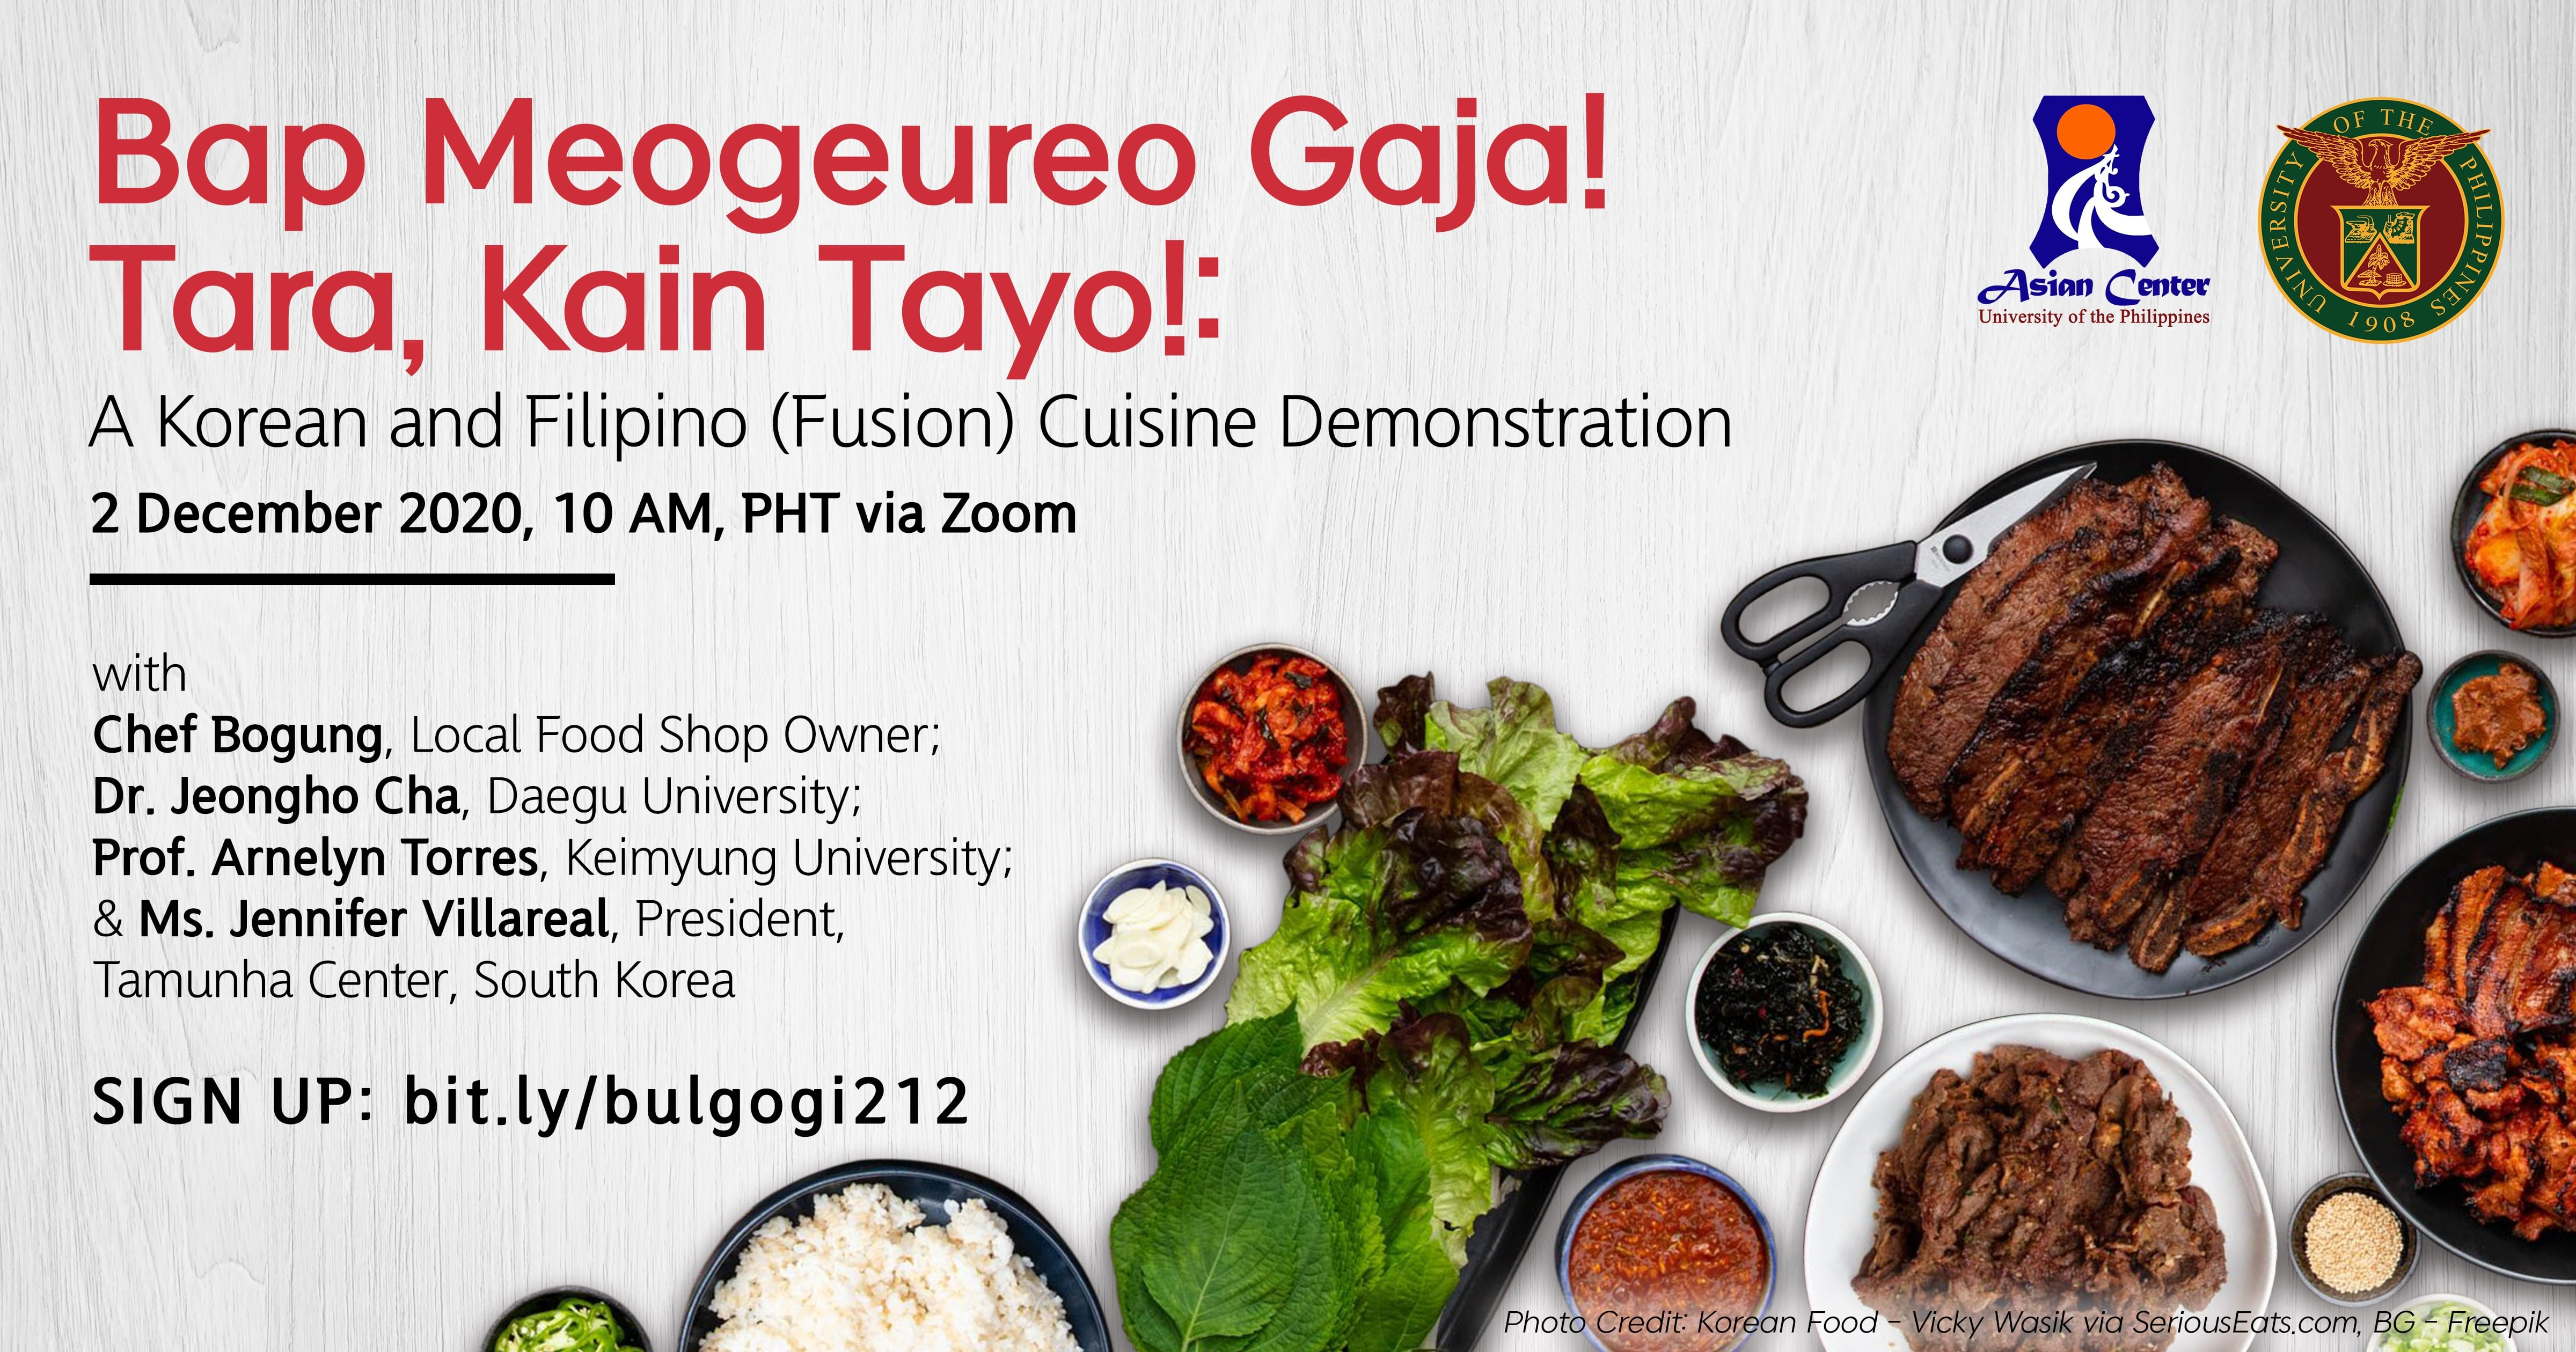 Bap Meogeureo Gaja! Tara, Kain Tayo! : A Korean and Filipino (Fusion) Cuisine Demonstration (2 Dec 2020)